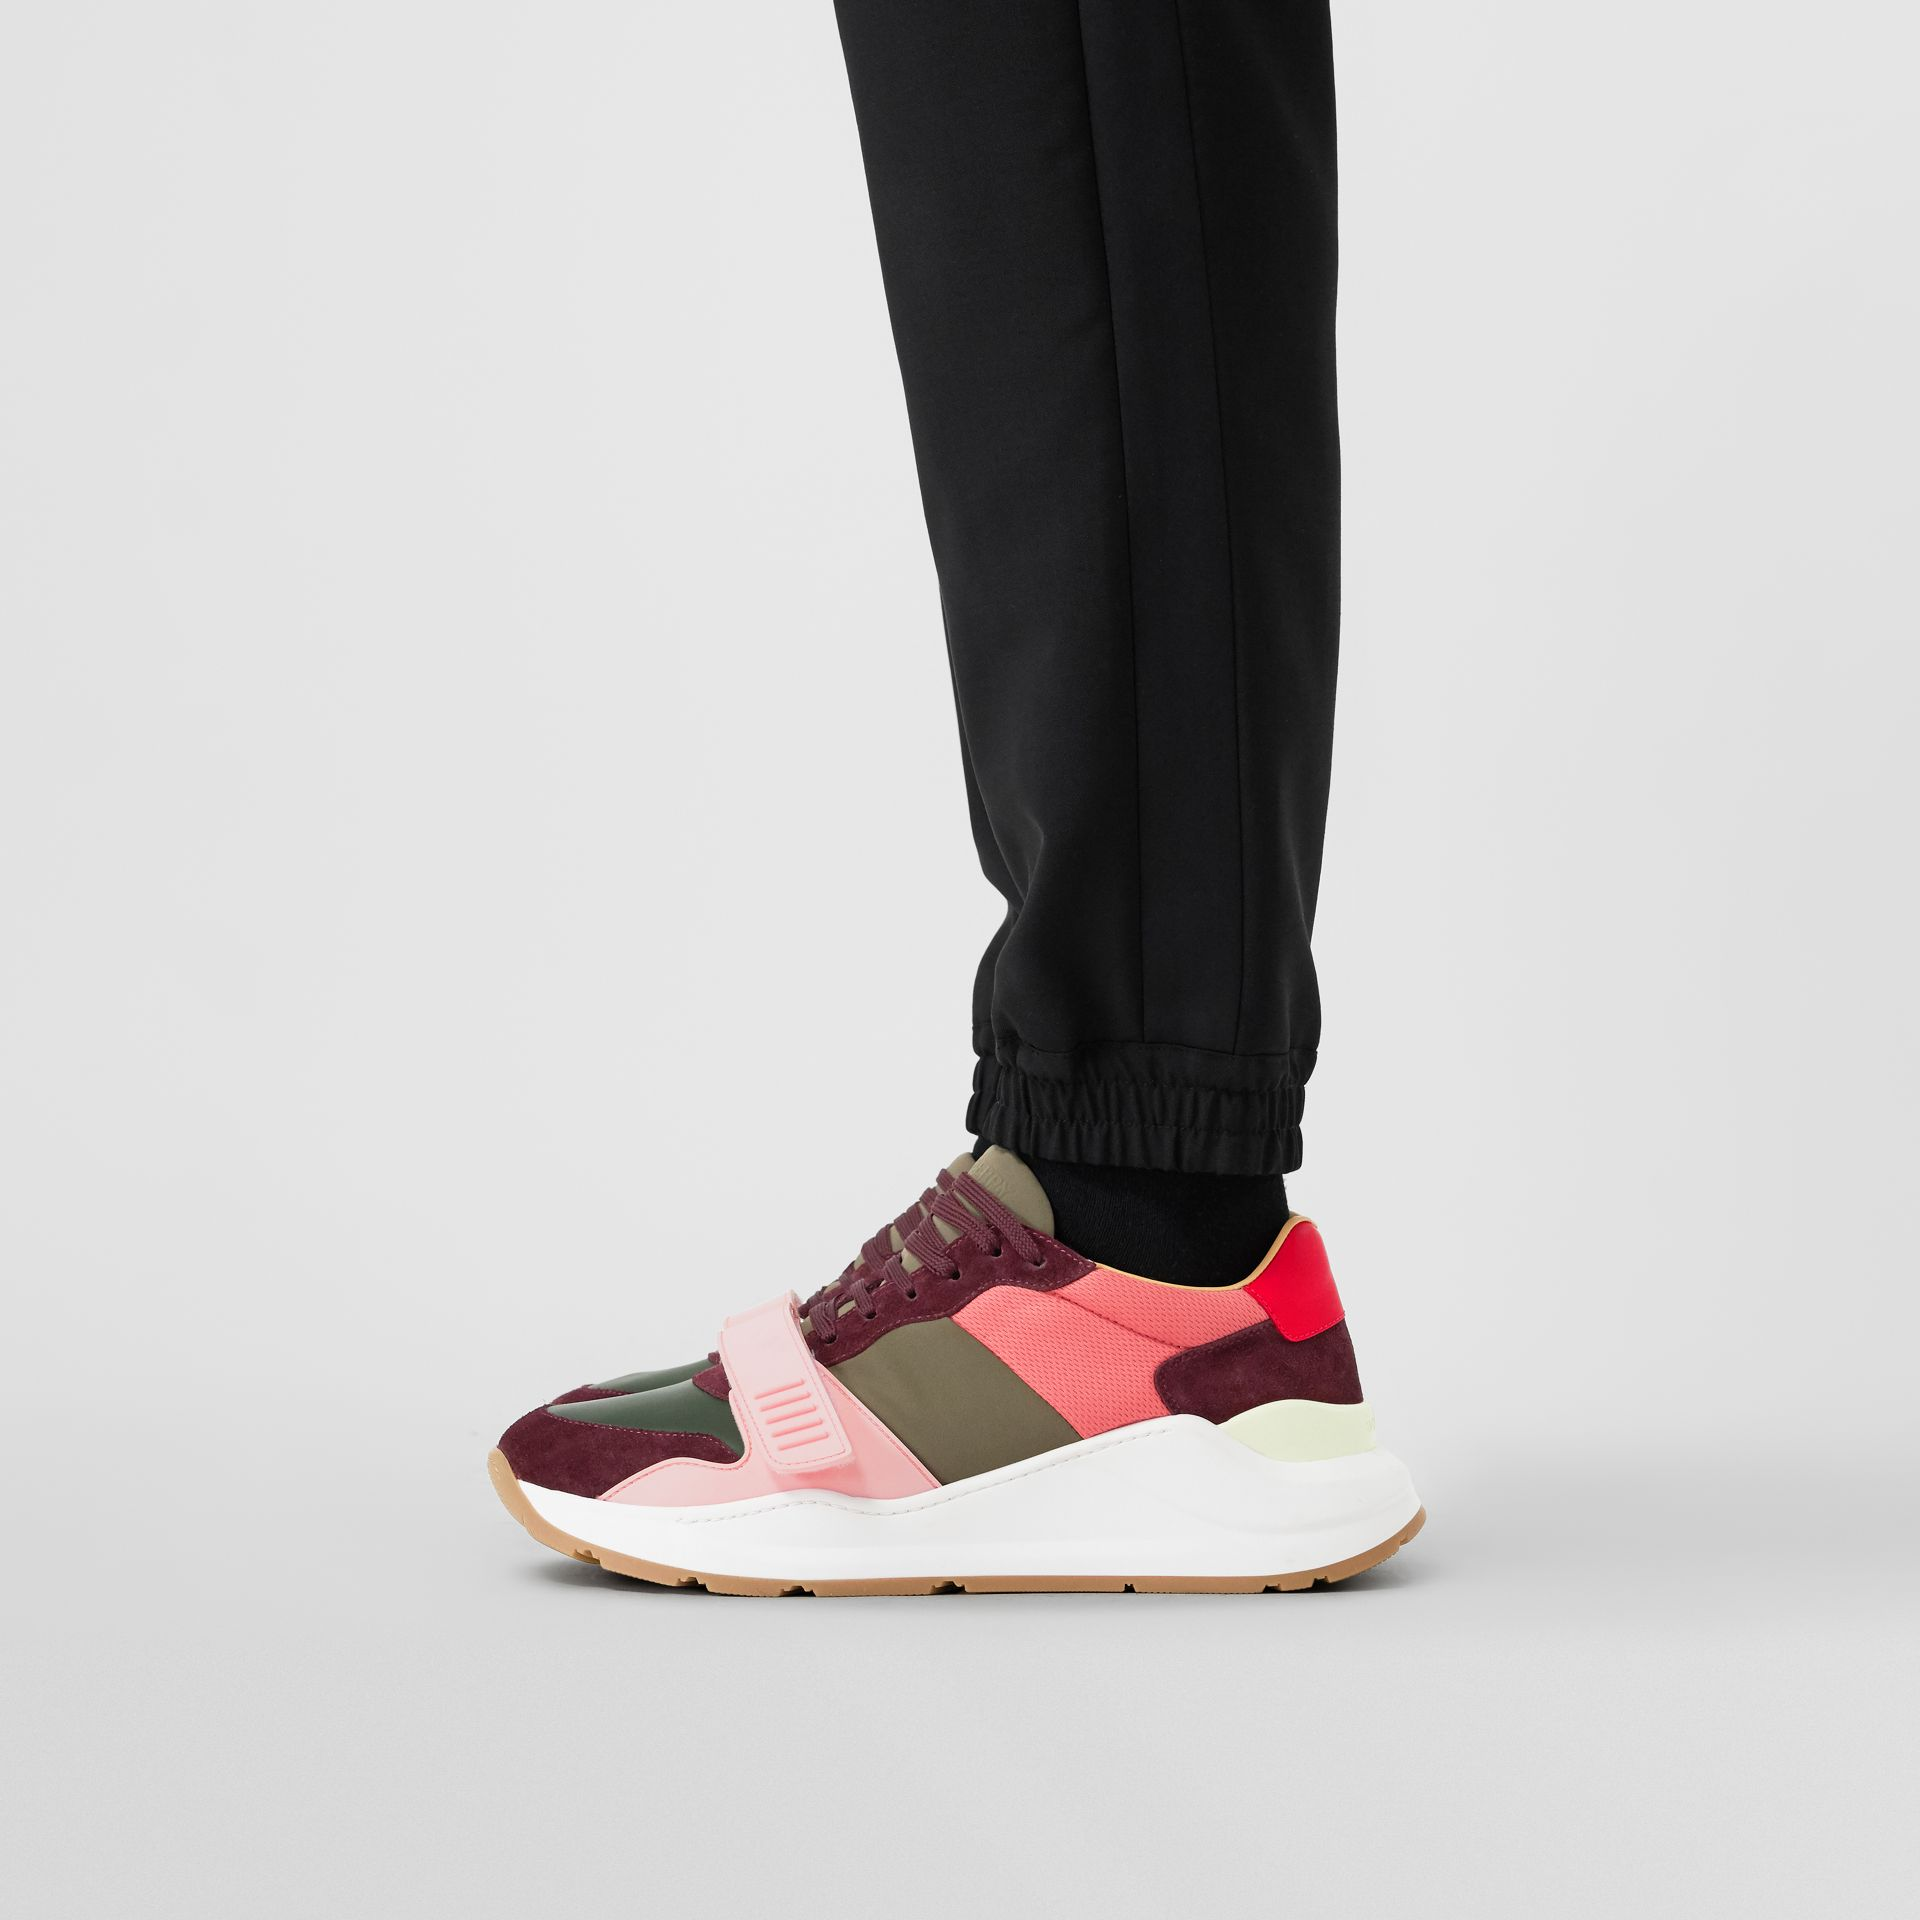 Colour Block Suede and Neoprene Sneakers in Bordeaux/khaki - Men | Burberry - gallery image 2